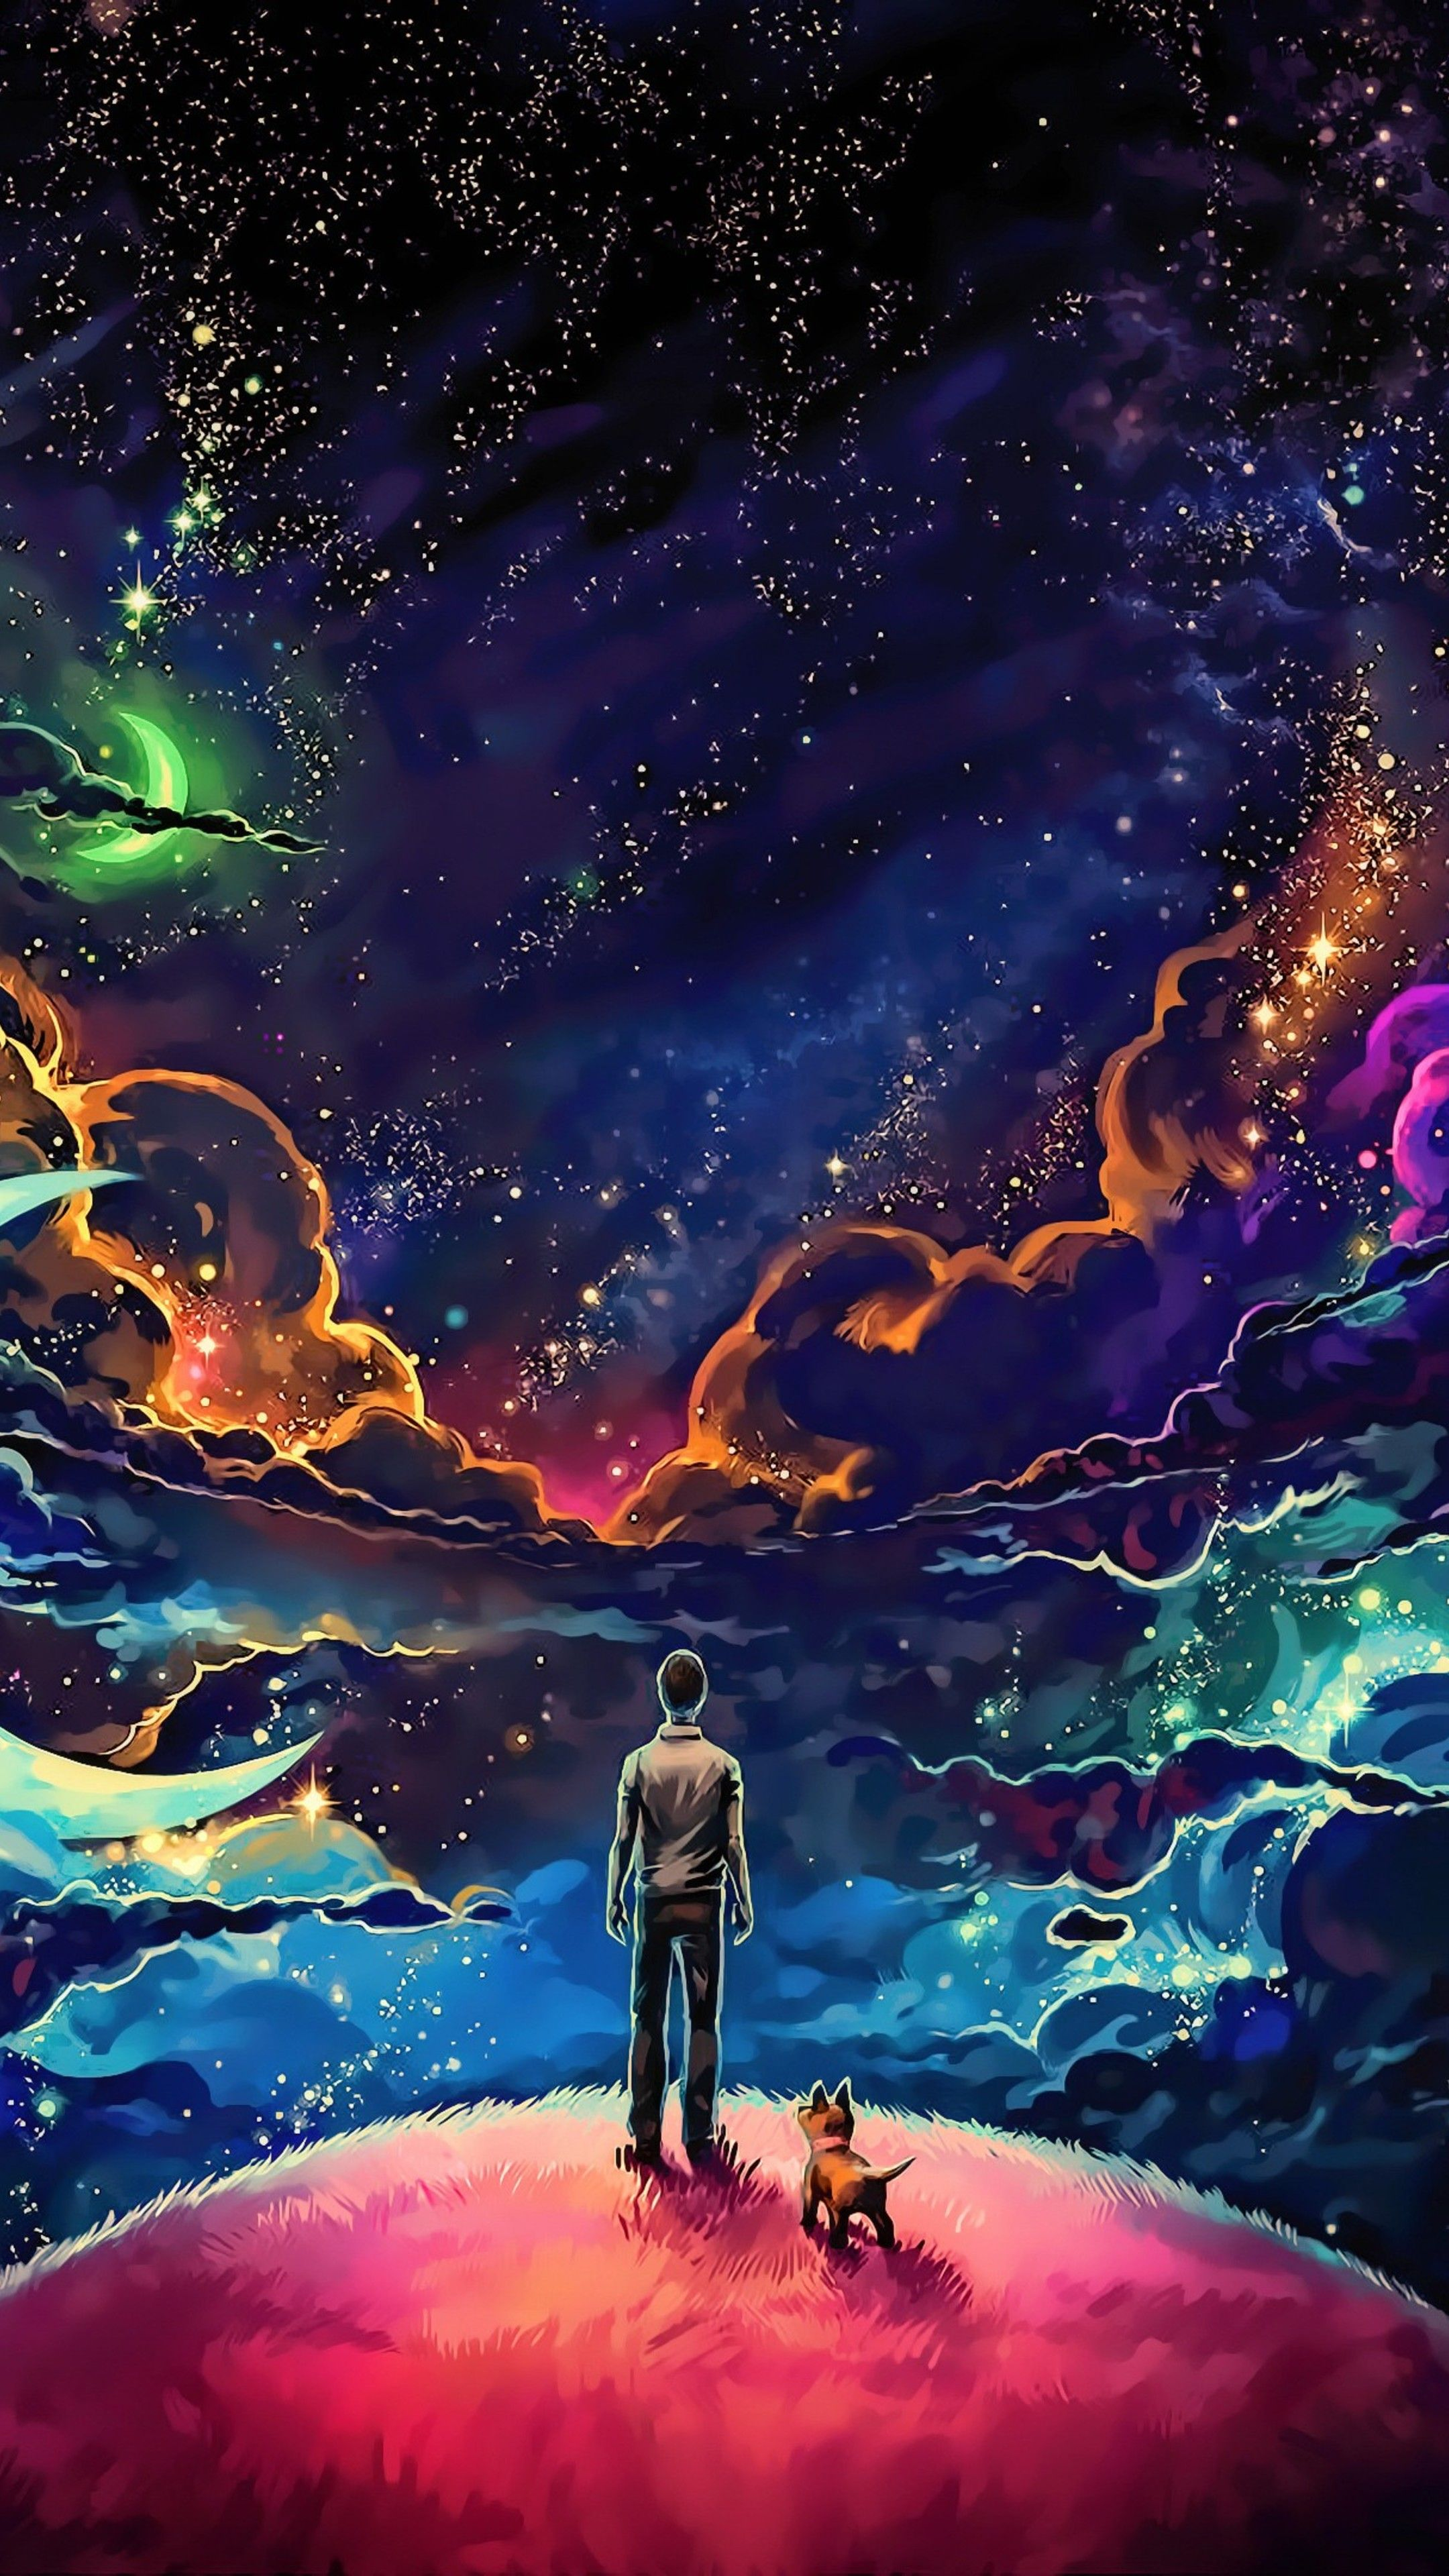 Misc Little Prince With Dog Colorful Science Fiction Fantasy Art Stars Artwork 4k Wallpapers Galaxy Wallpaper Man And Dog Galaxy Art